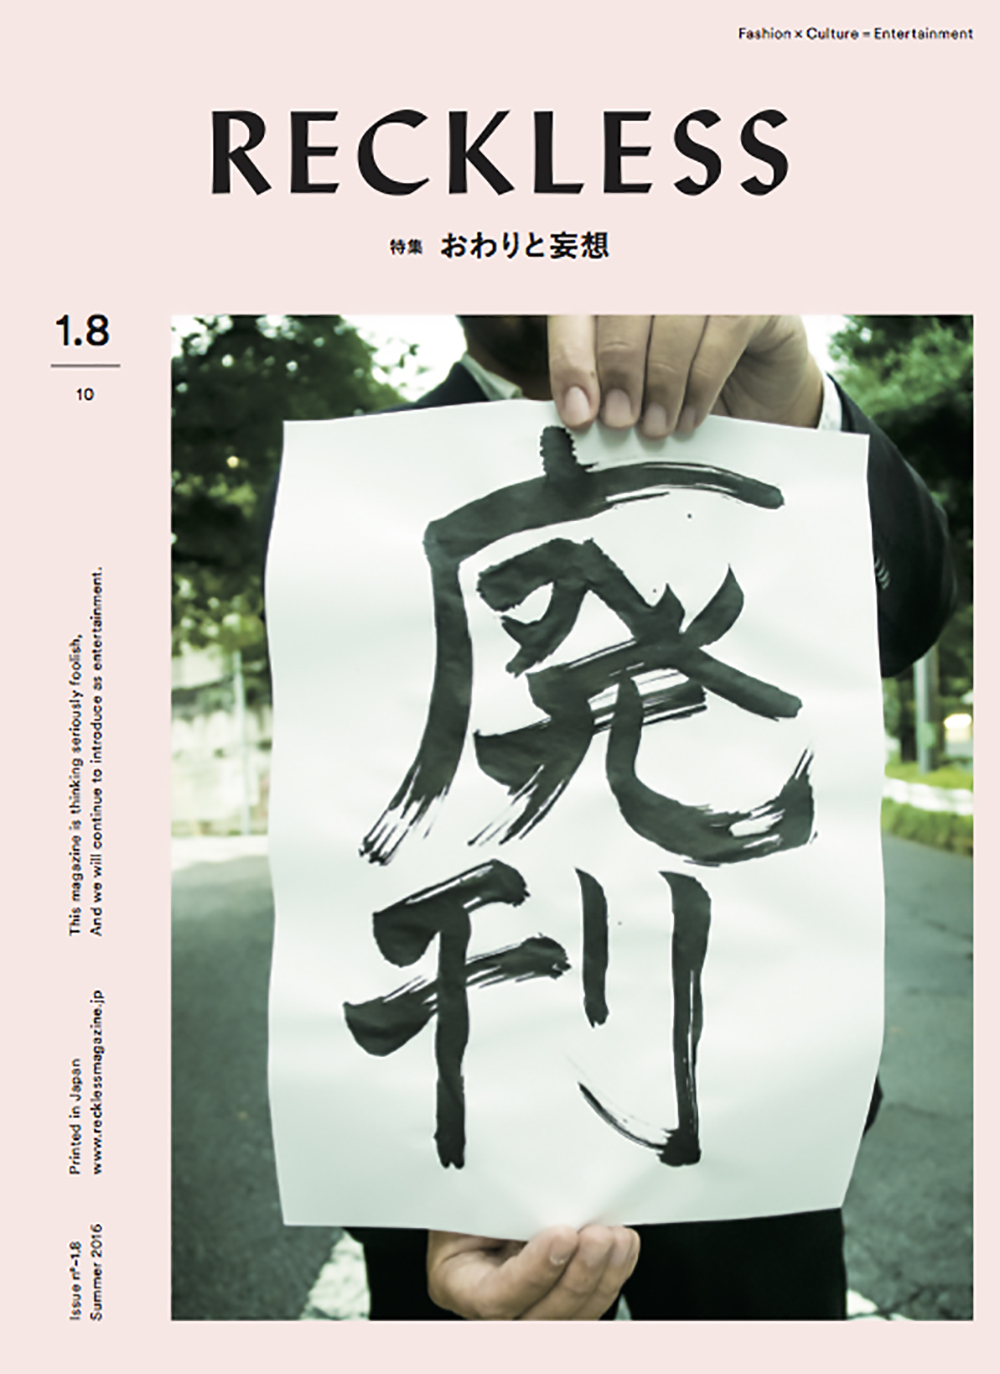 「RECKLESS」ISSUE n°1.8(2016)